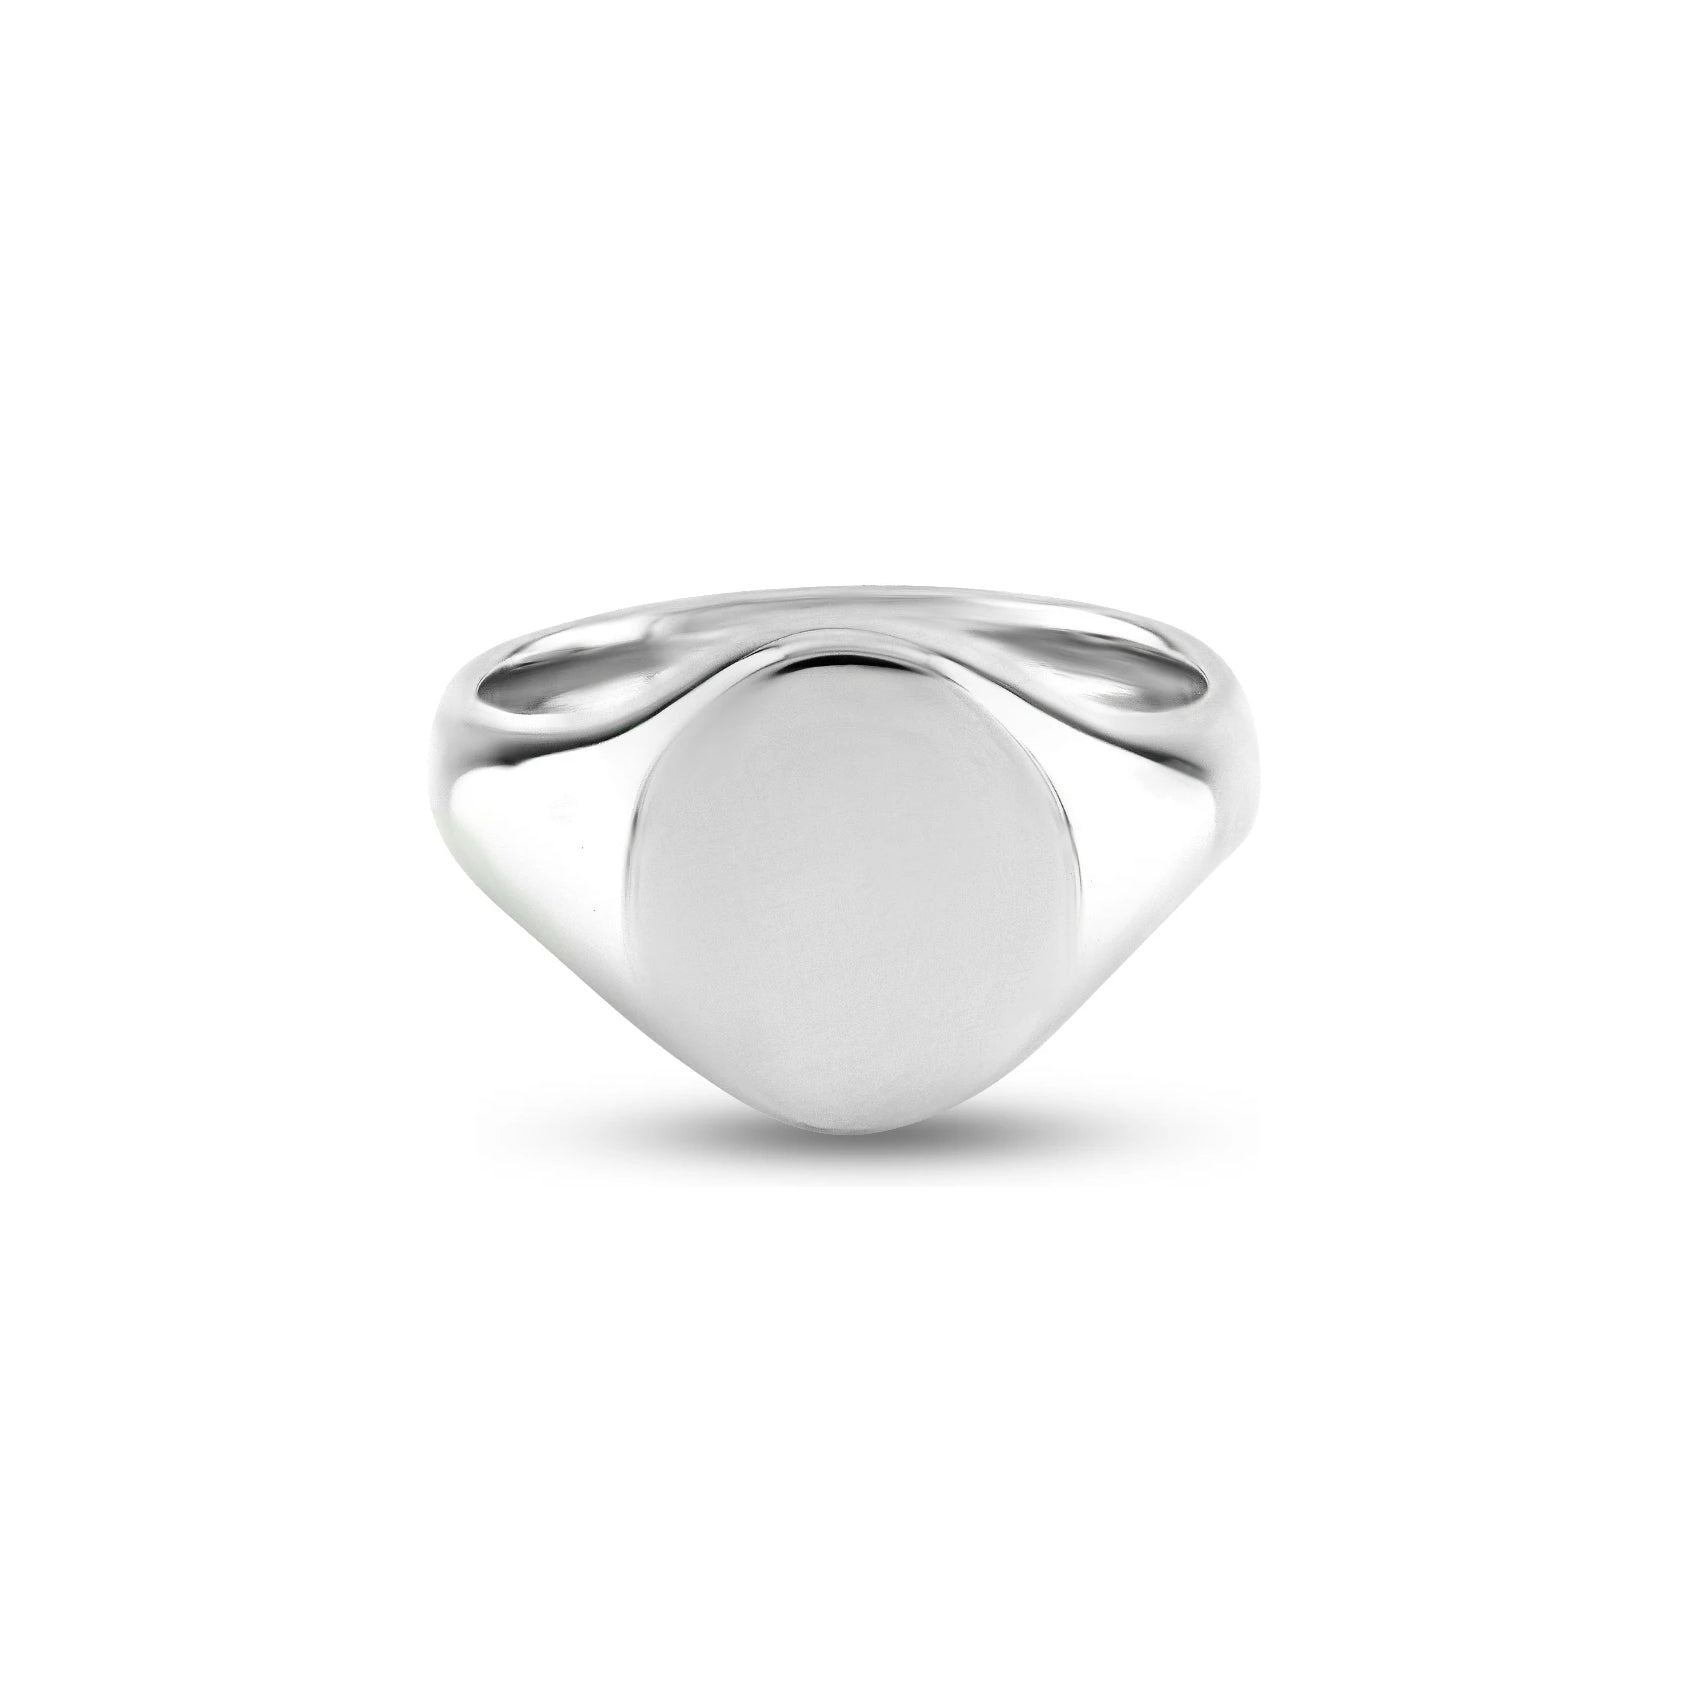 Silver 13 x 11mm Oval Signet Ring